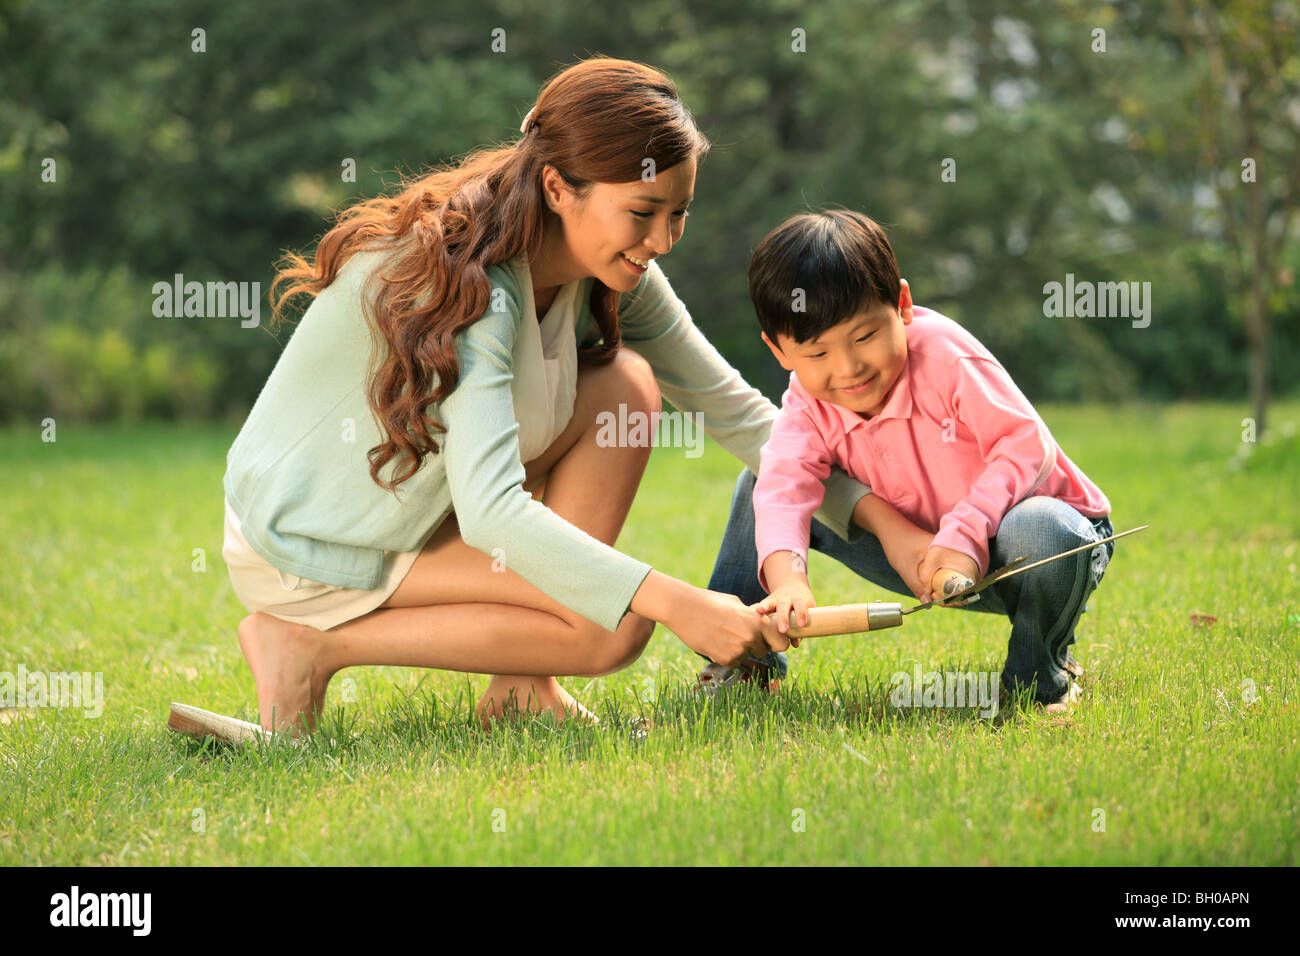 Mother And Son Pron Grass With Tools Stock Photo 27667997 - Alamy-8932